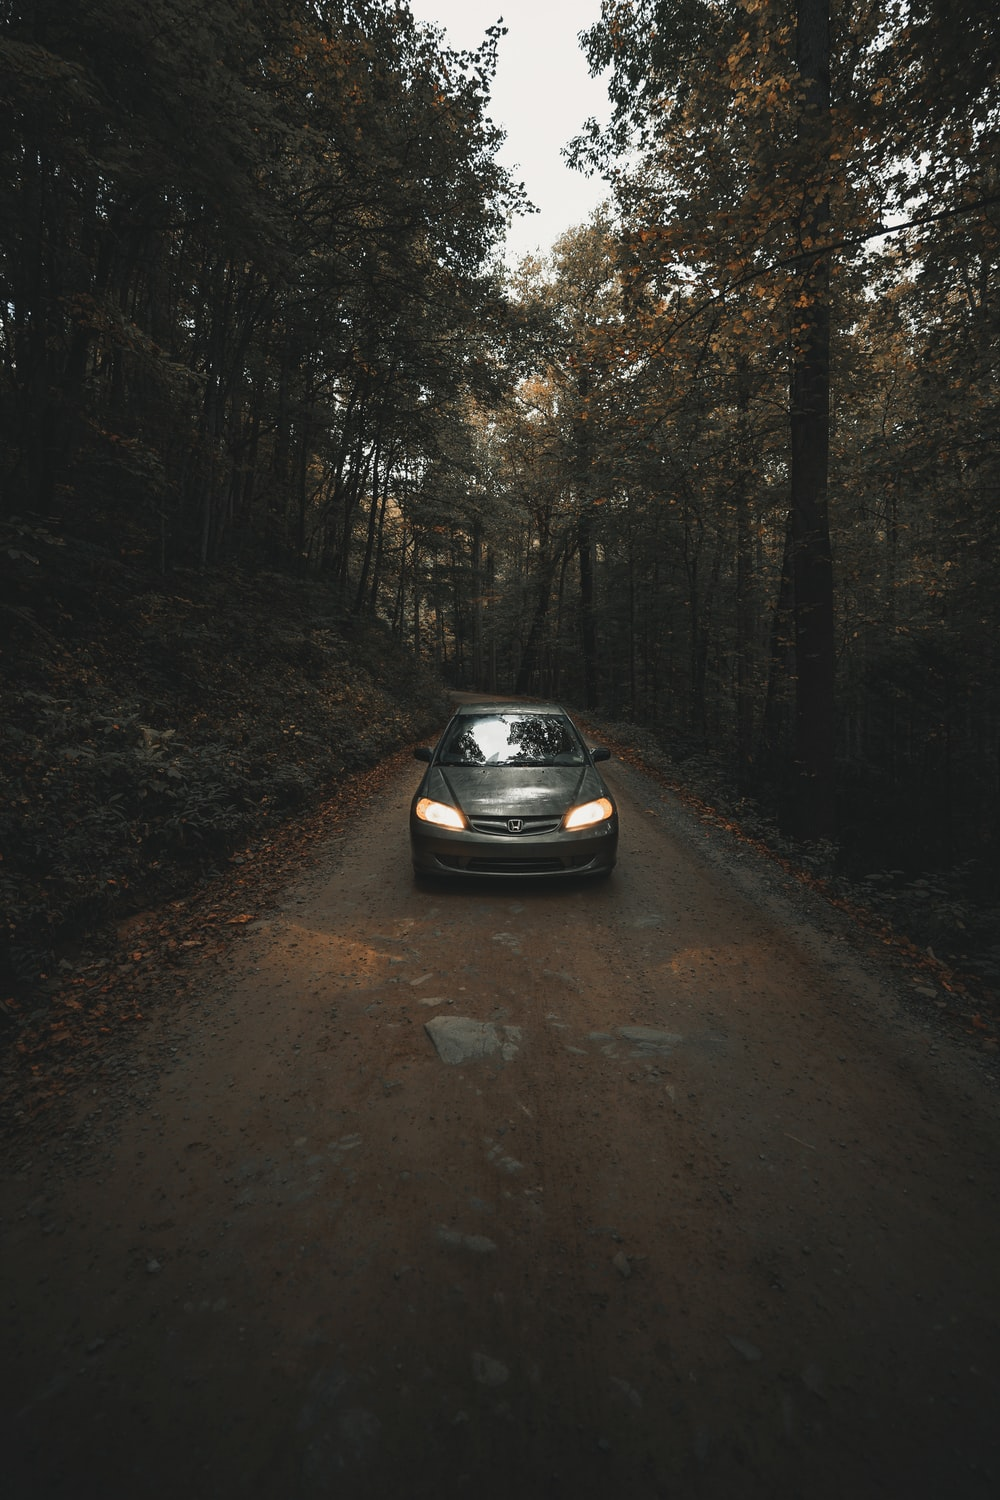 car on dirt road between trees